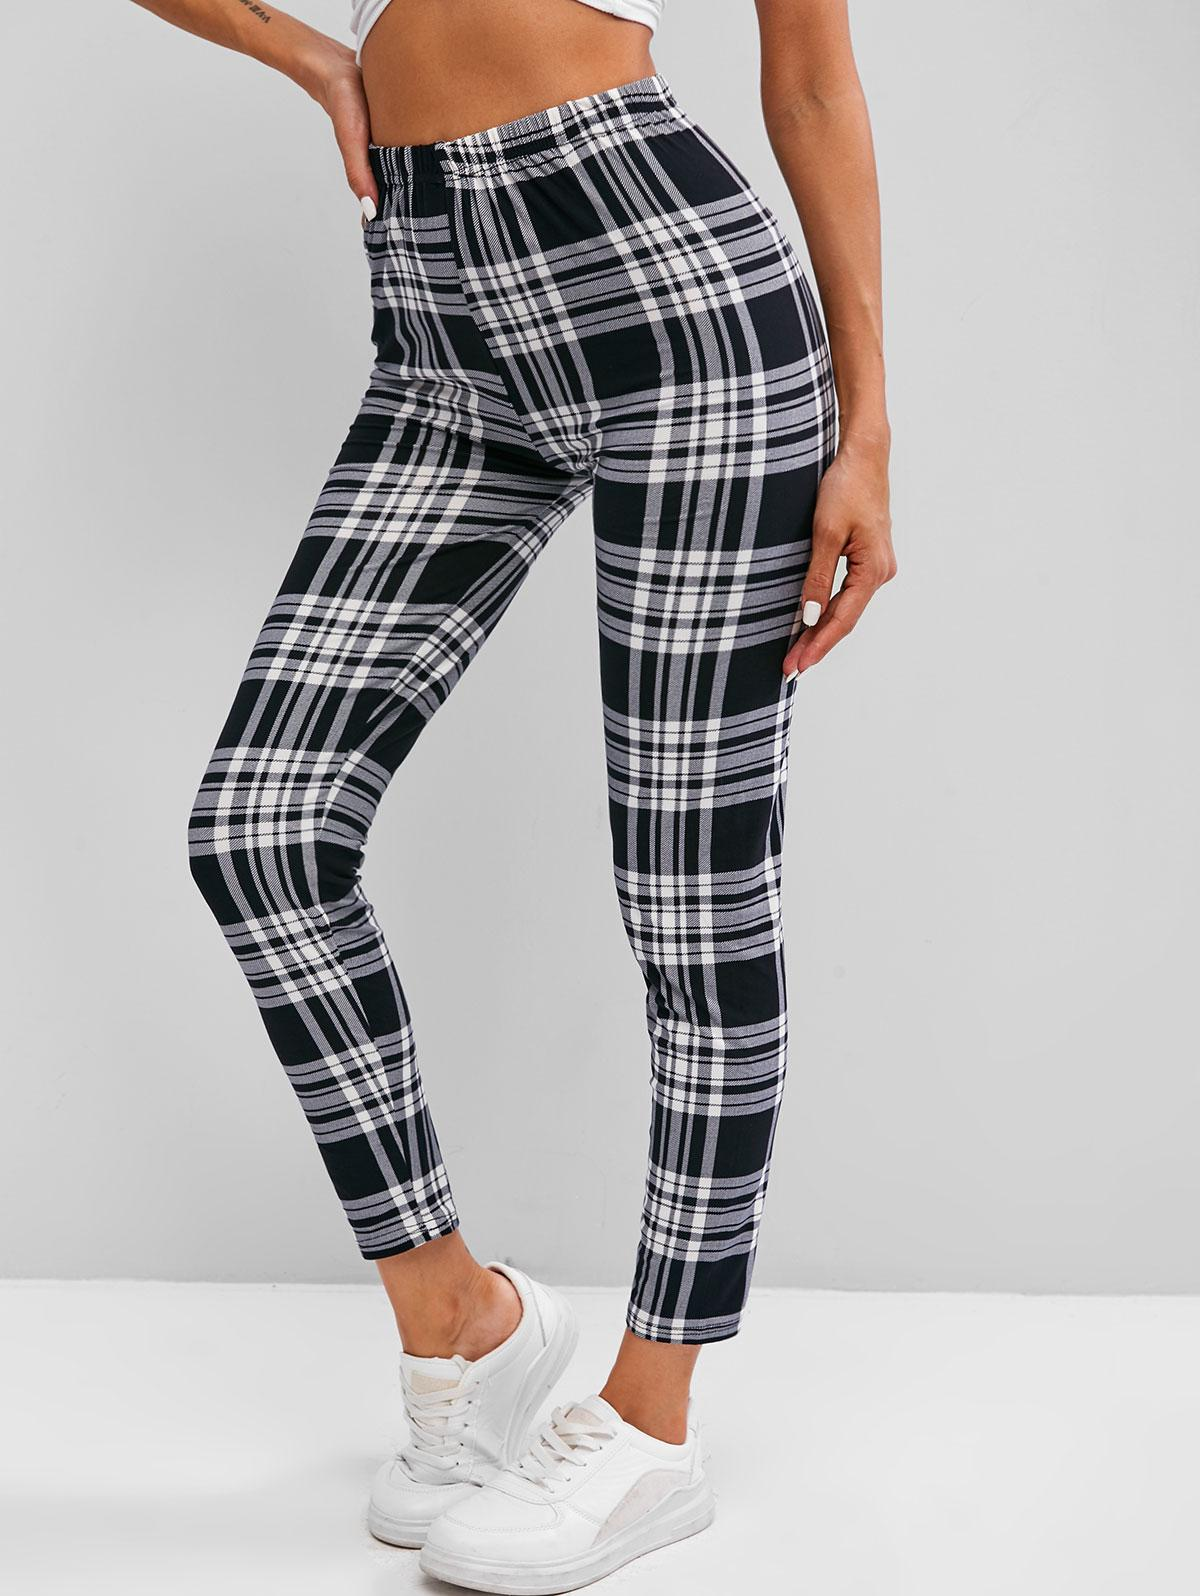 Plaid High Waisted Skinny Leggings